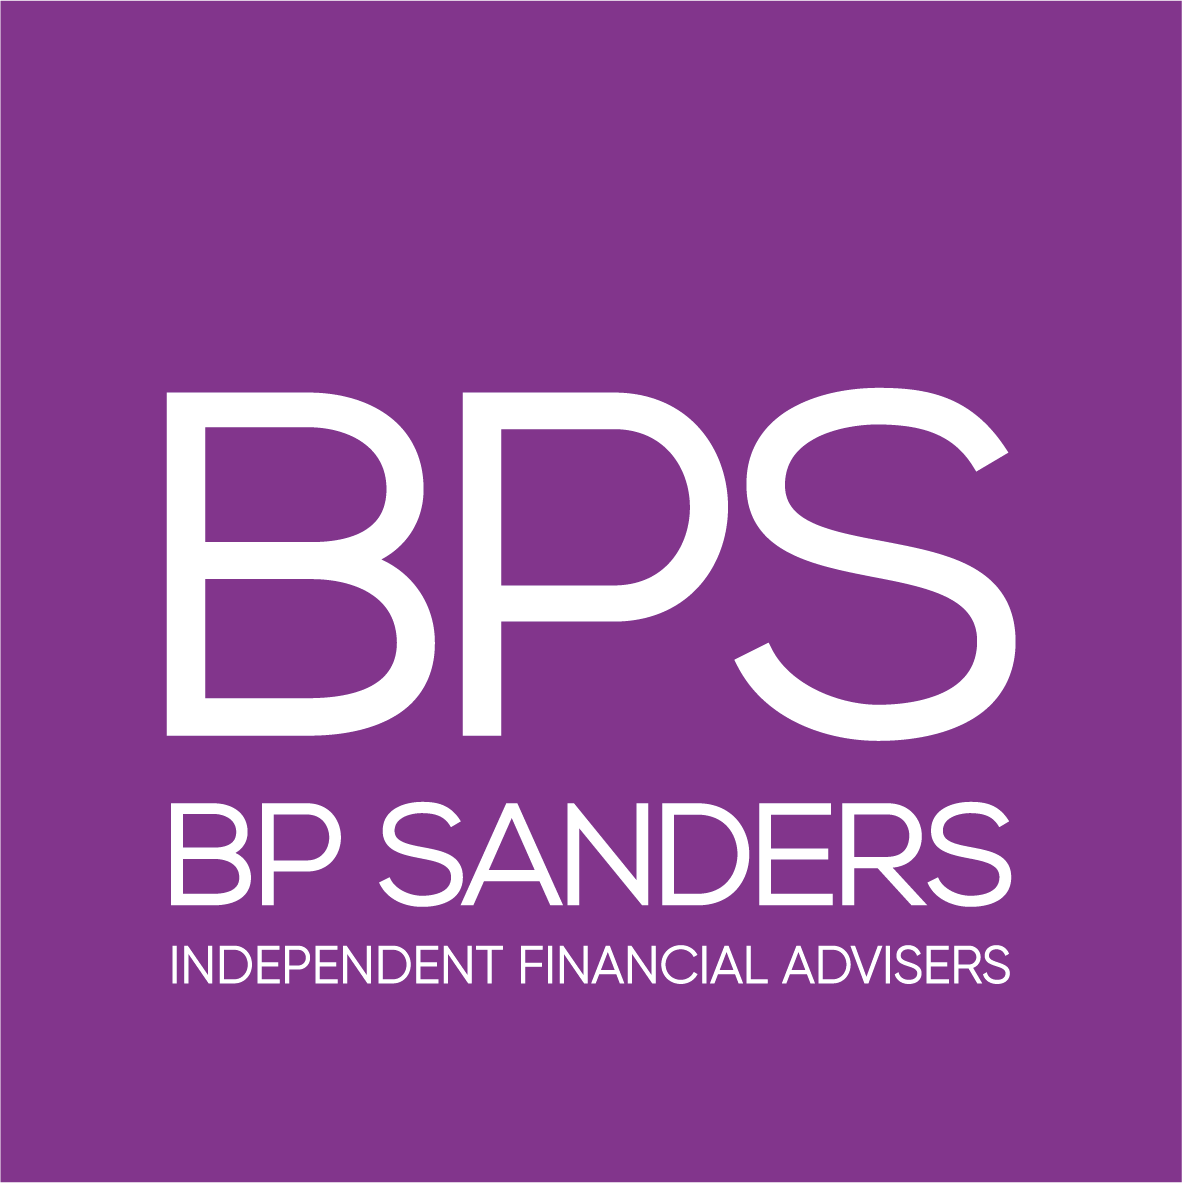 B P Sanders and Company Limited